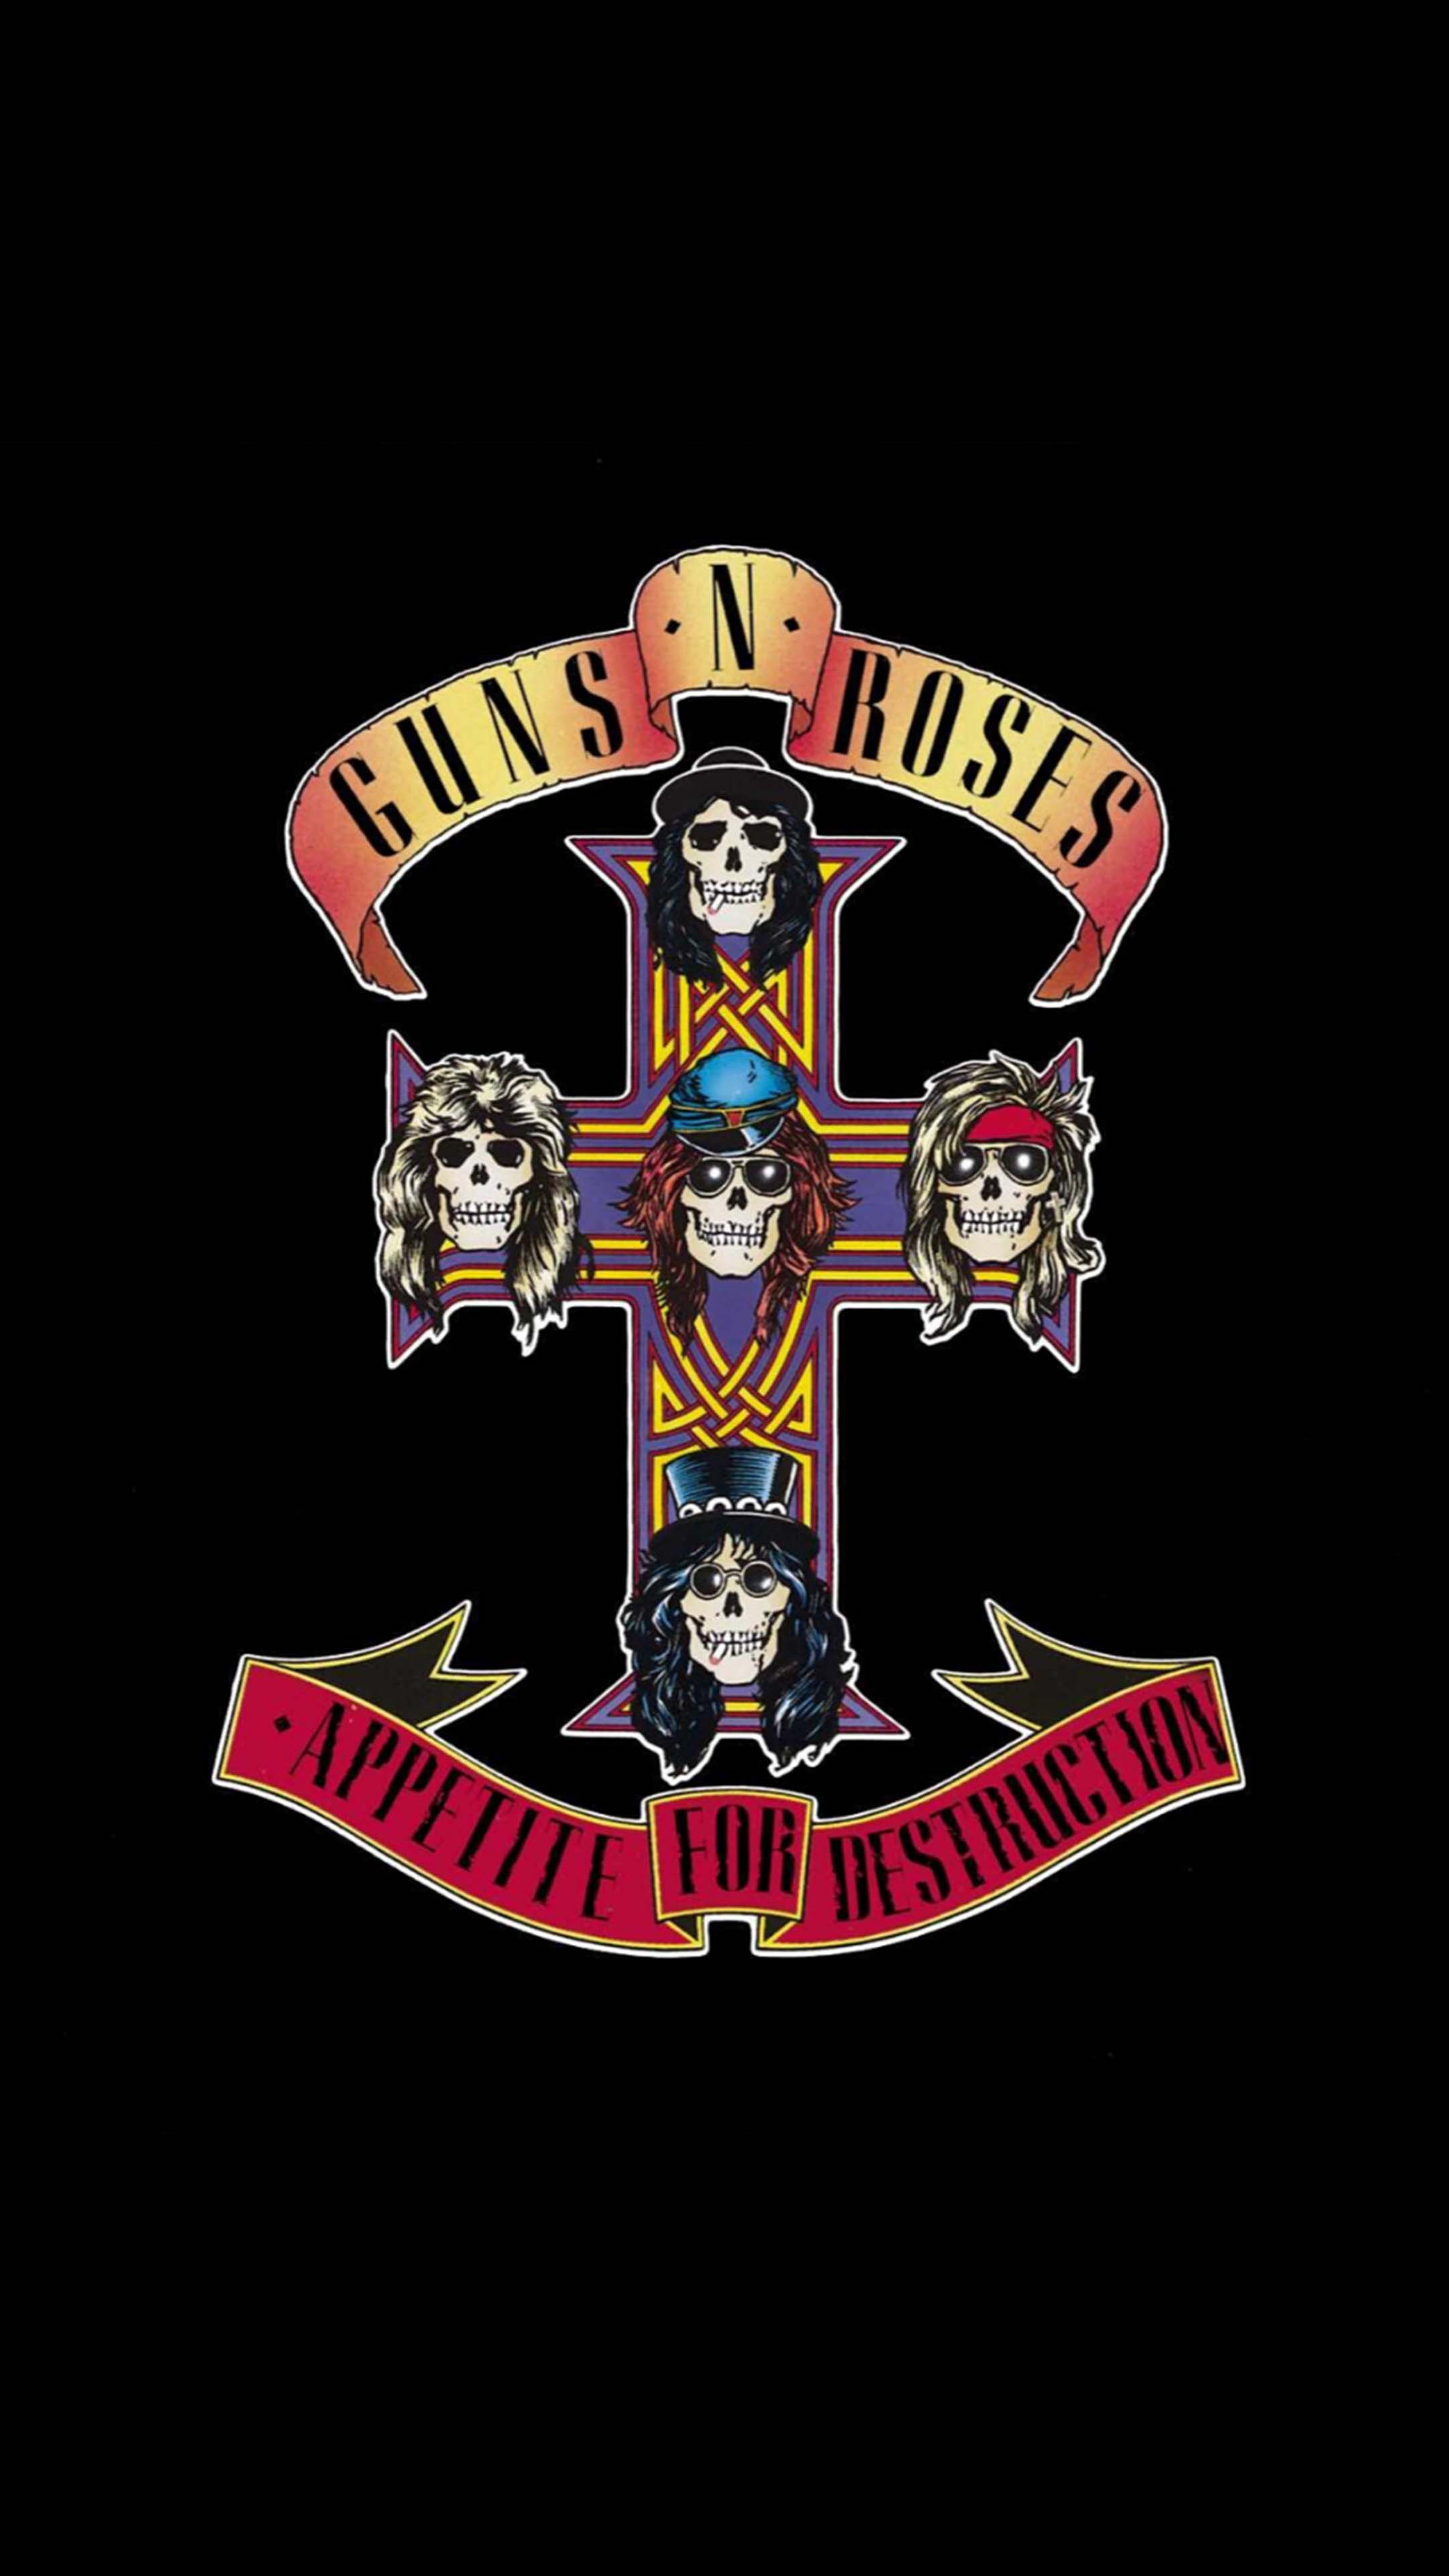 Guns N' Roses Logo Free 4K Ultra HD Mobile Wallpaper